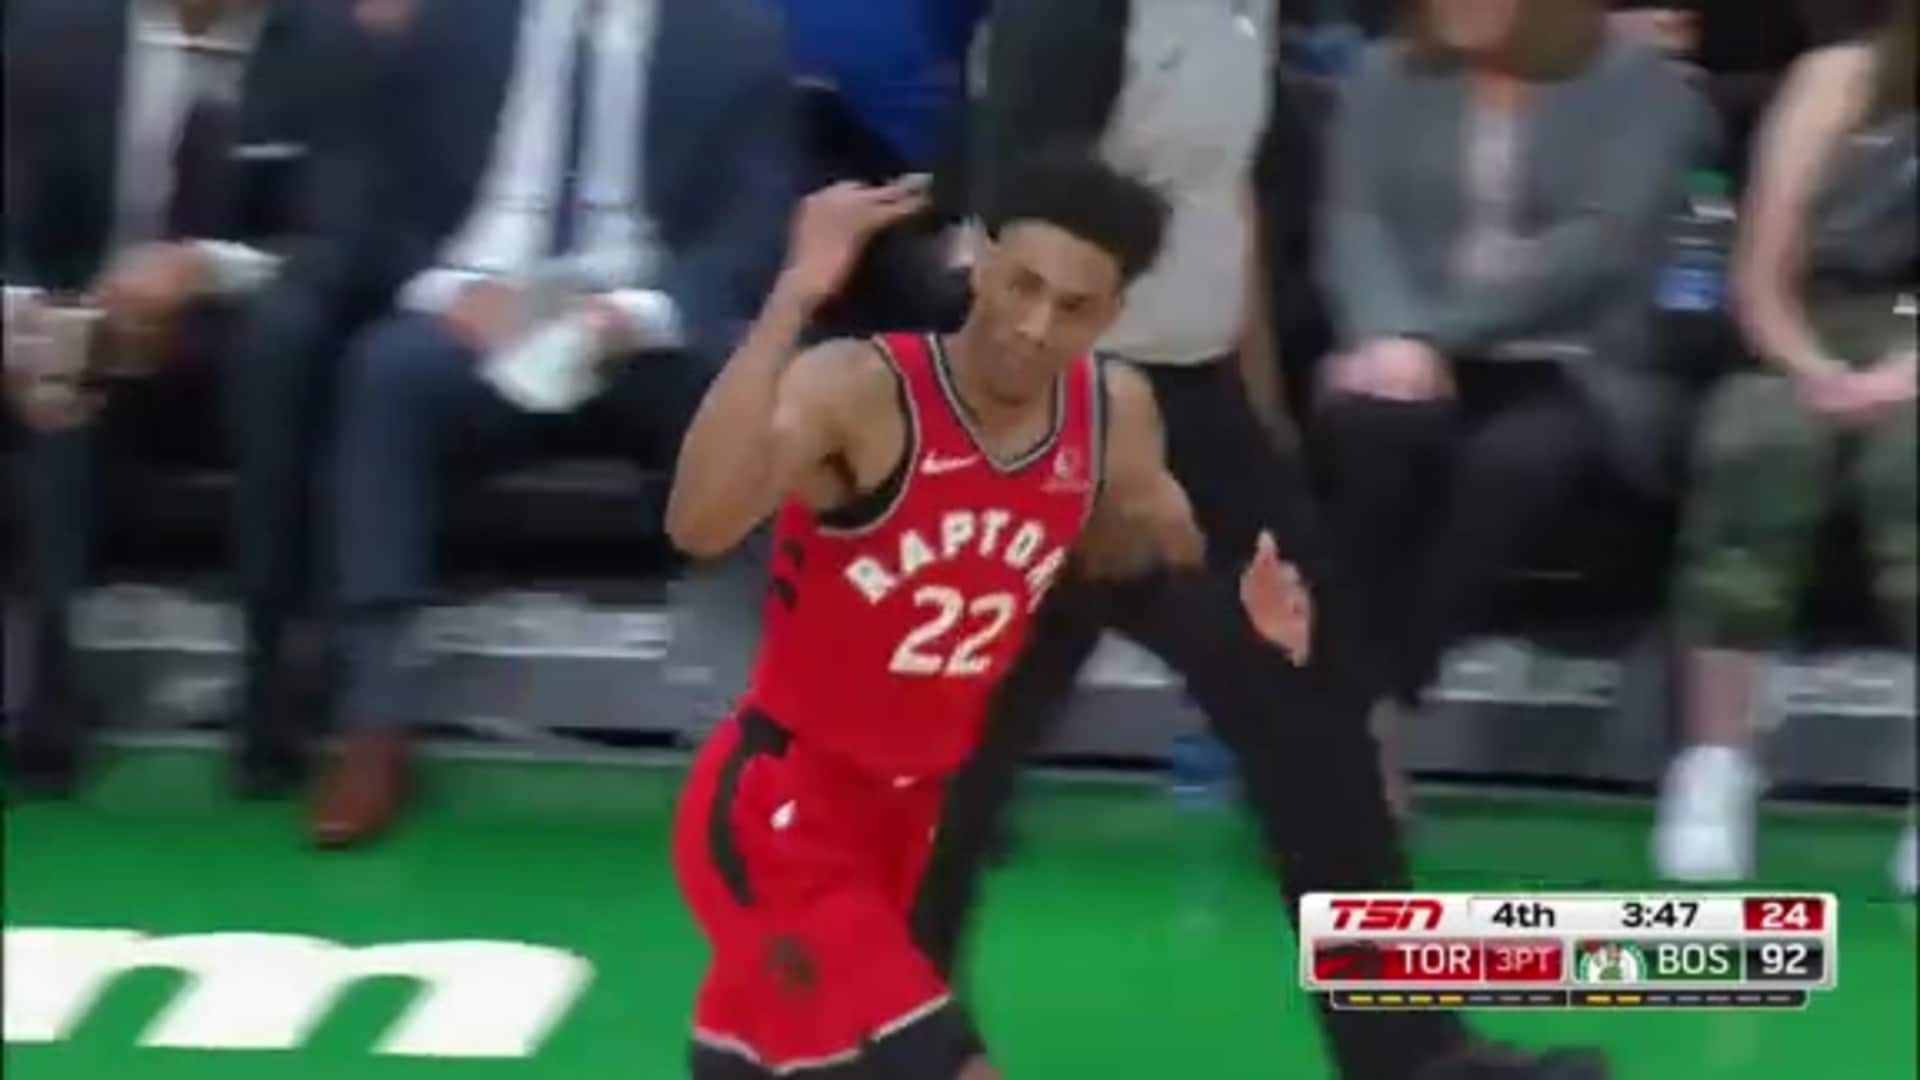 Game Highlights: Raptors at Celtics - December 28, 2019